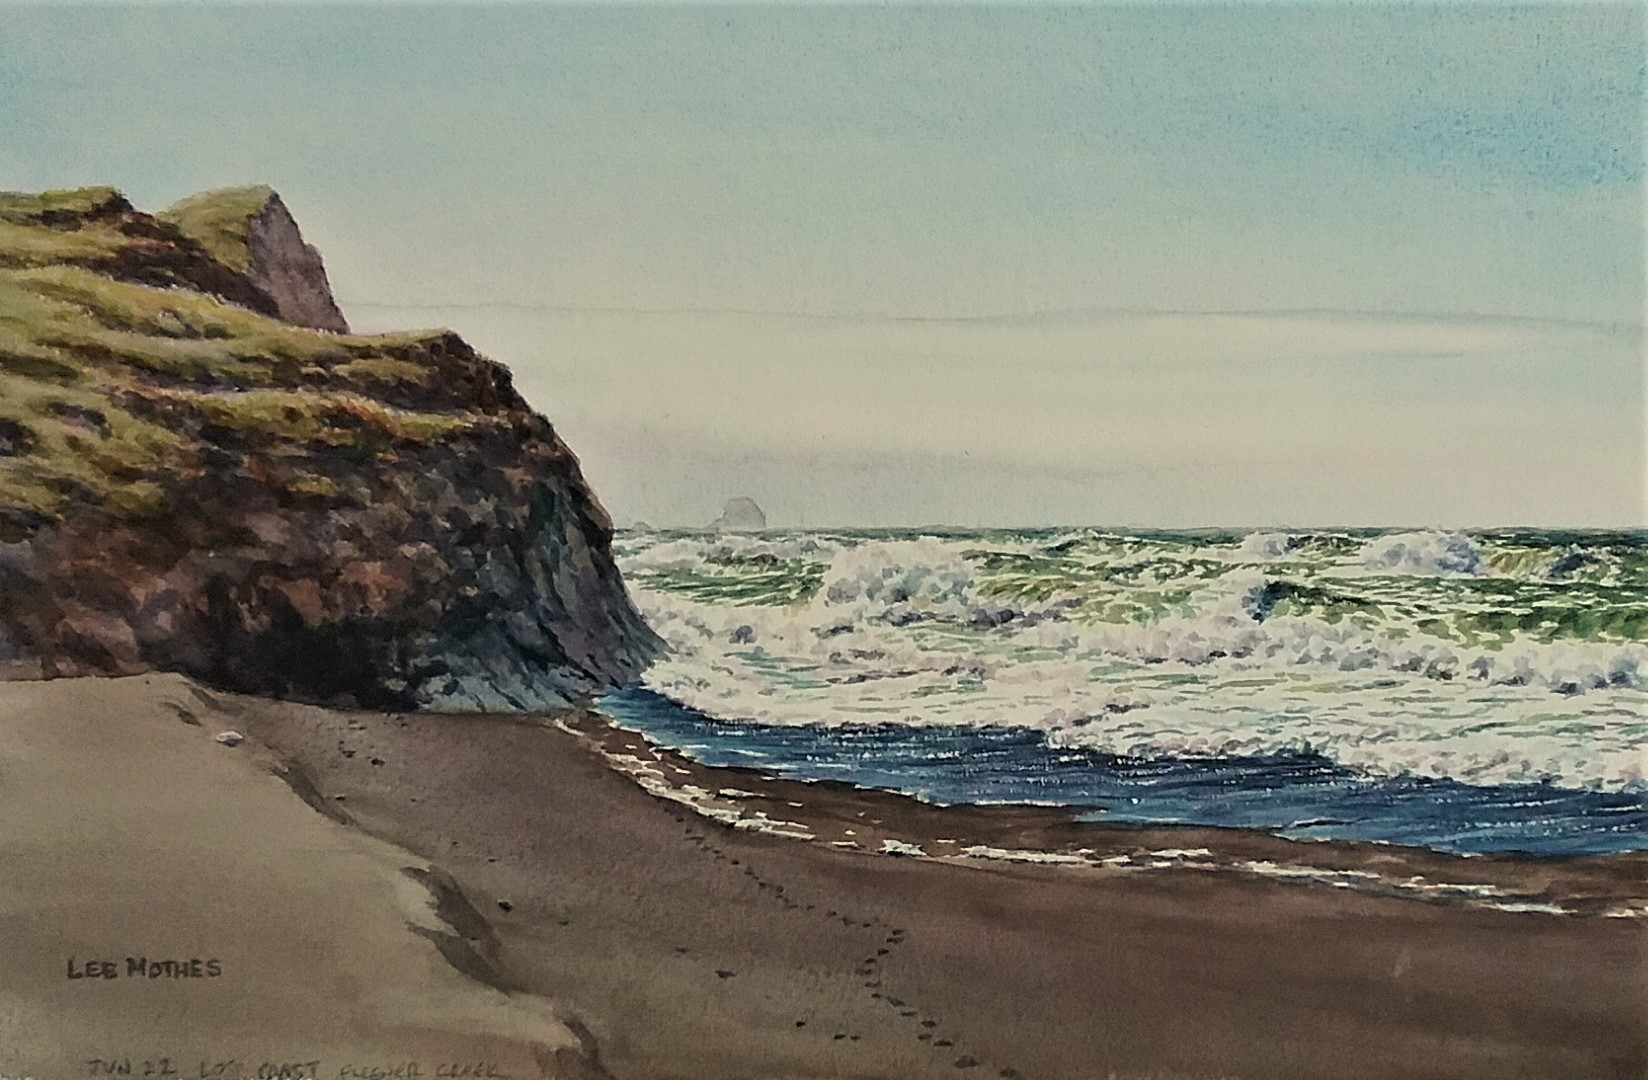 Rough surf at Fleener Creek, on the Lost Coast, in southern Humboldt County.